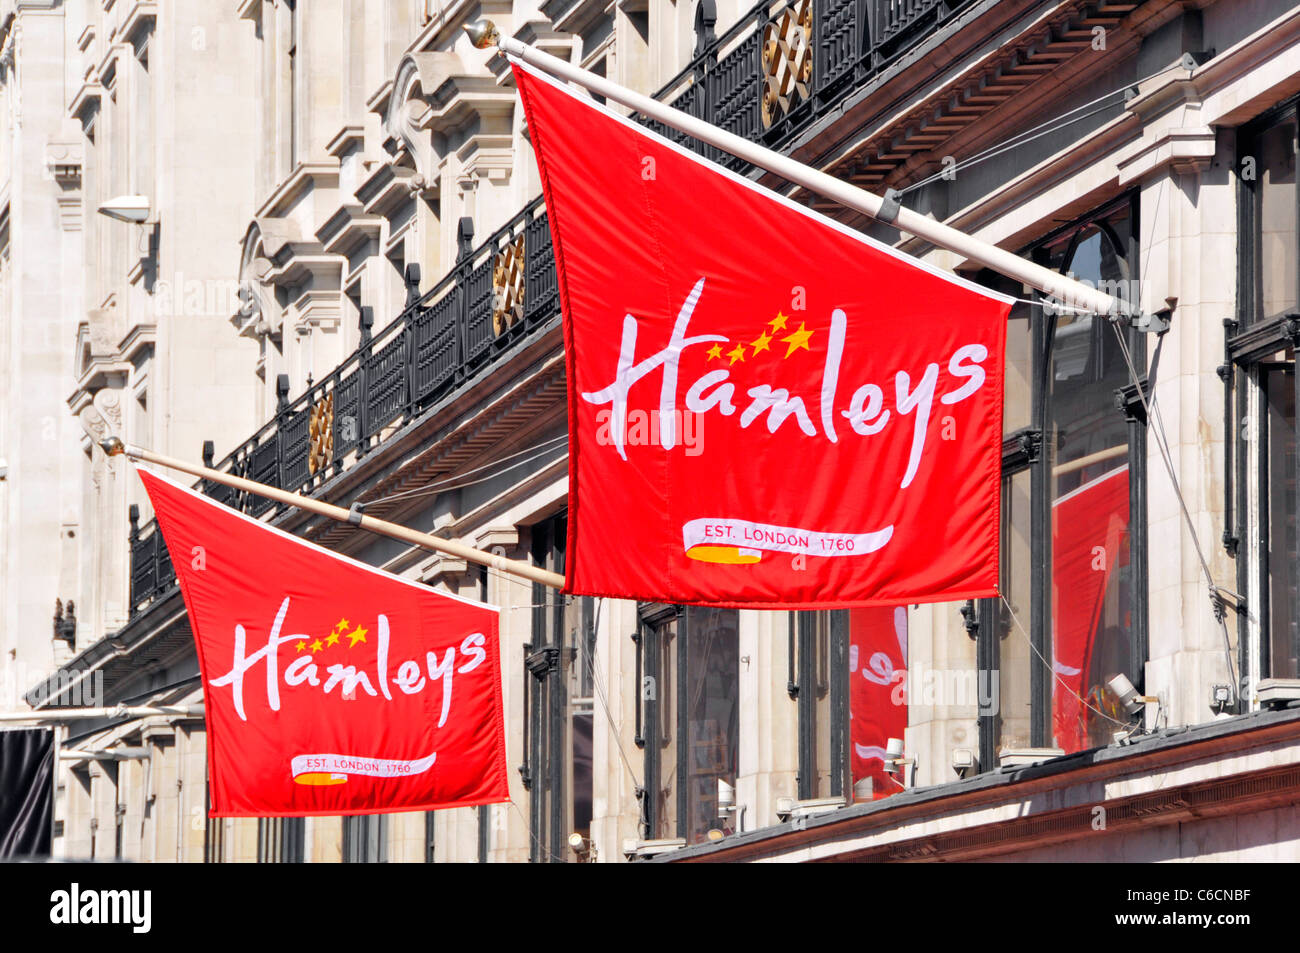 Street scene Hamleys logo on banners at famous flagship retail toy shop store business in London West End shopping - Stock Image